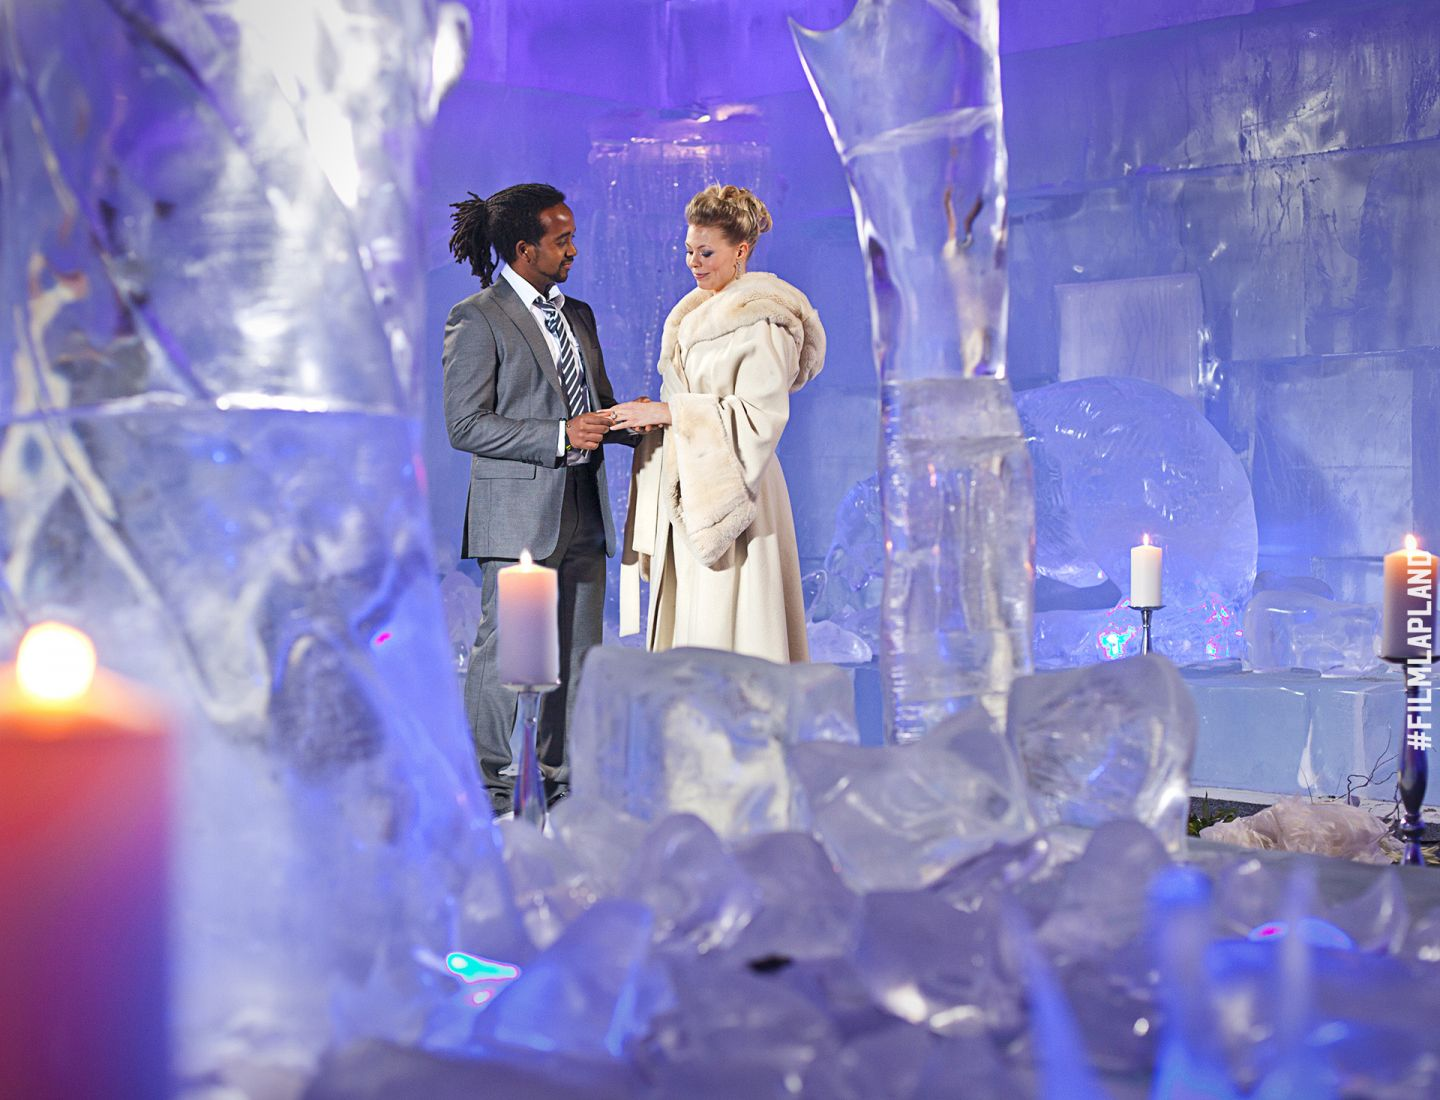 Wedding among the ice sculptures in SantaPark, Rovaniemi, Finland